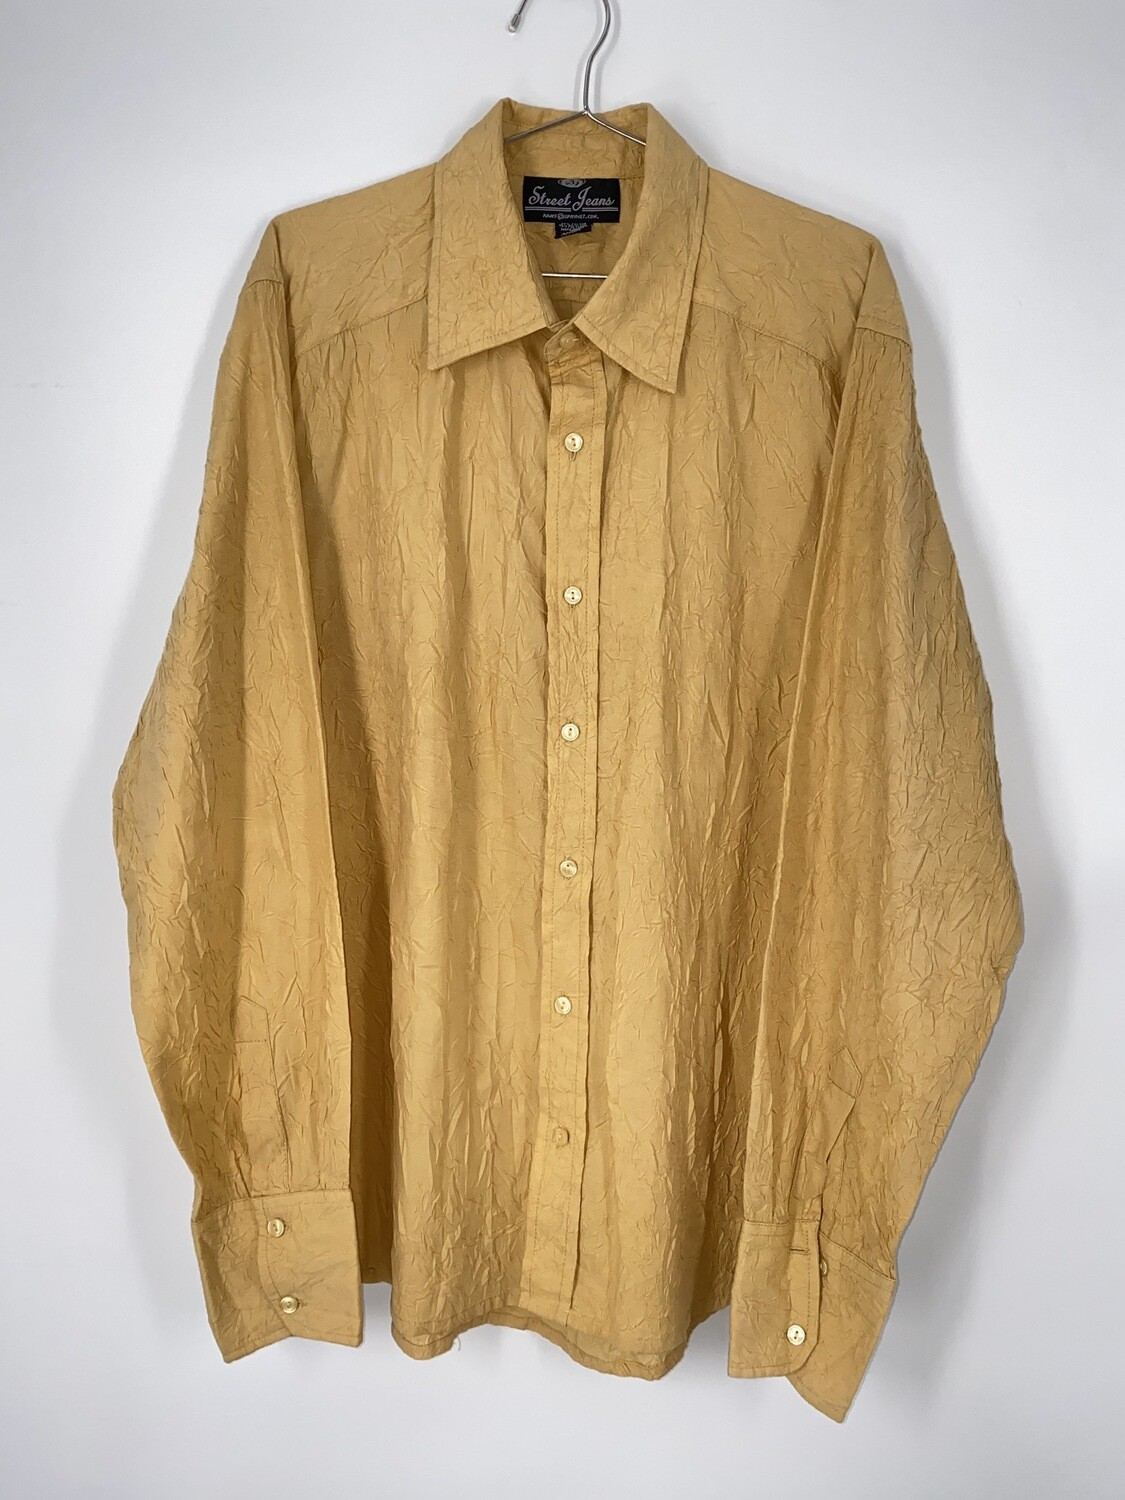 Street Jeans Yellow Crinkle Button Up Size L